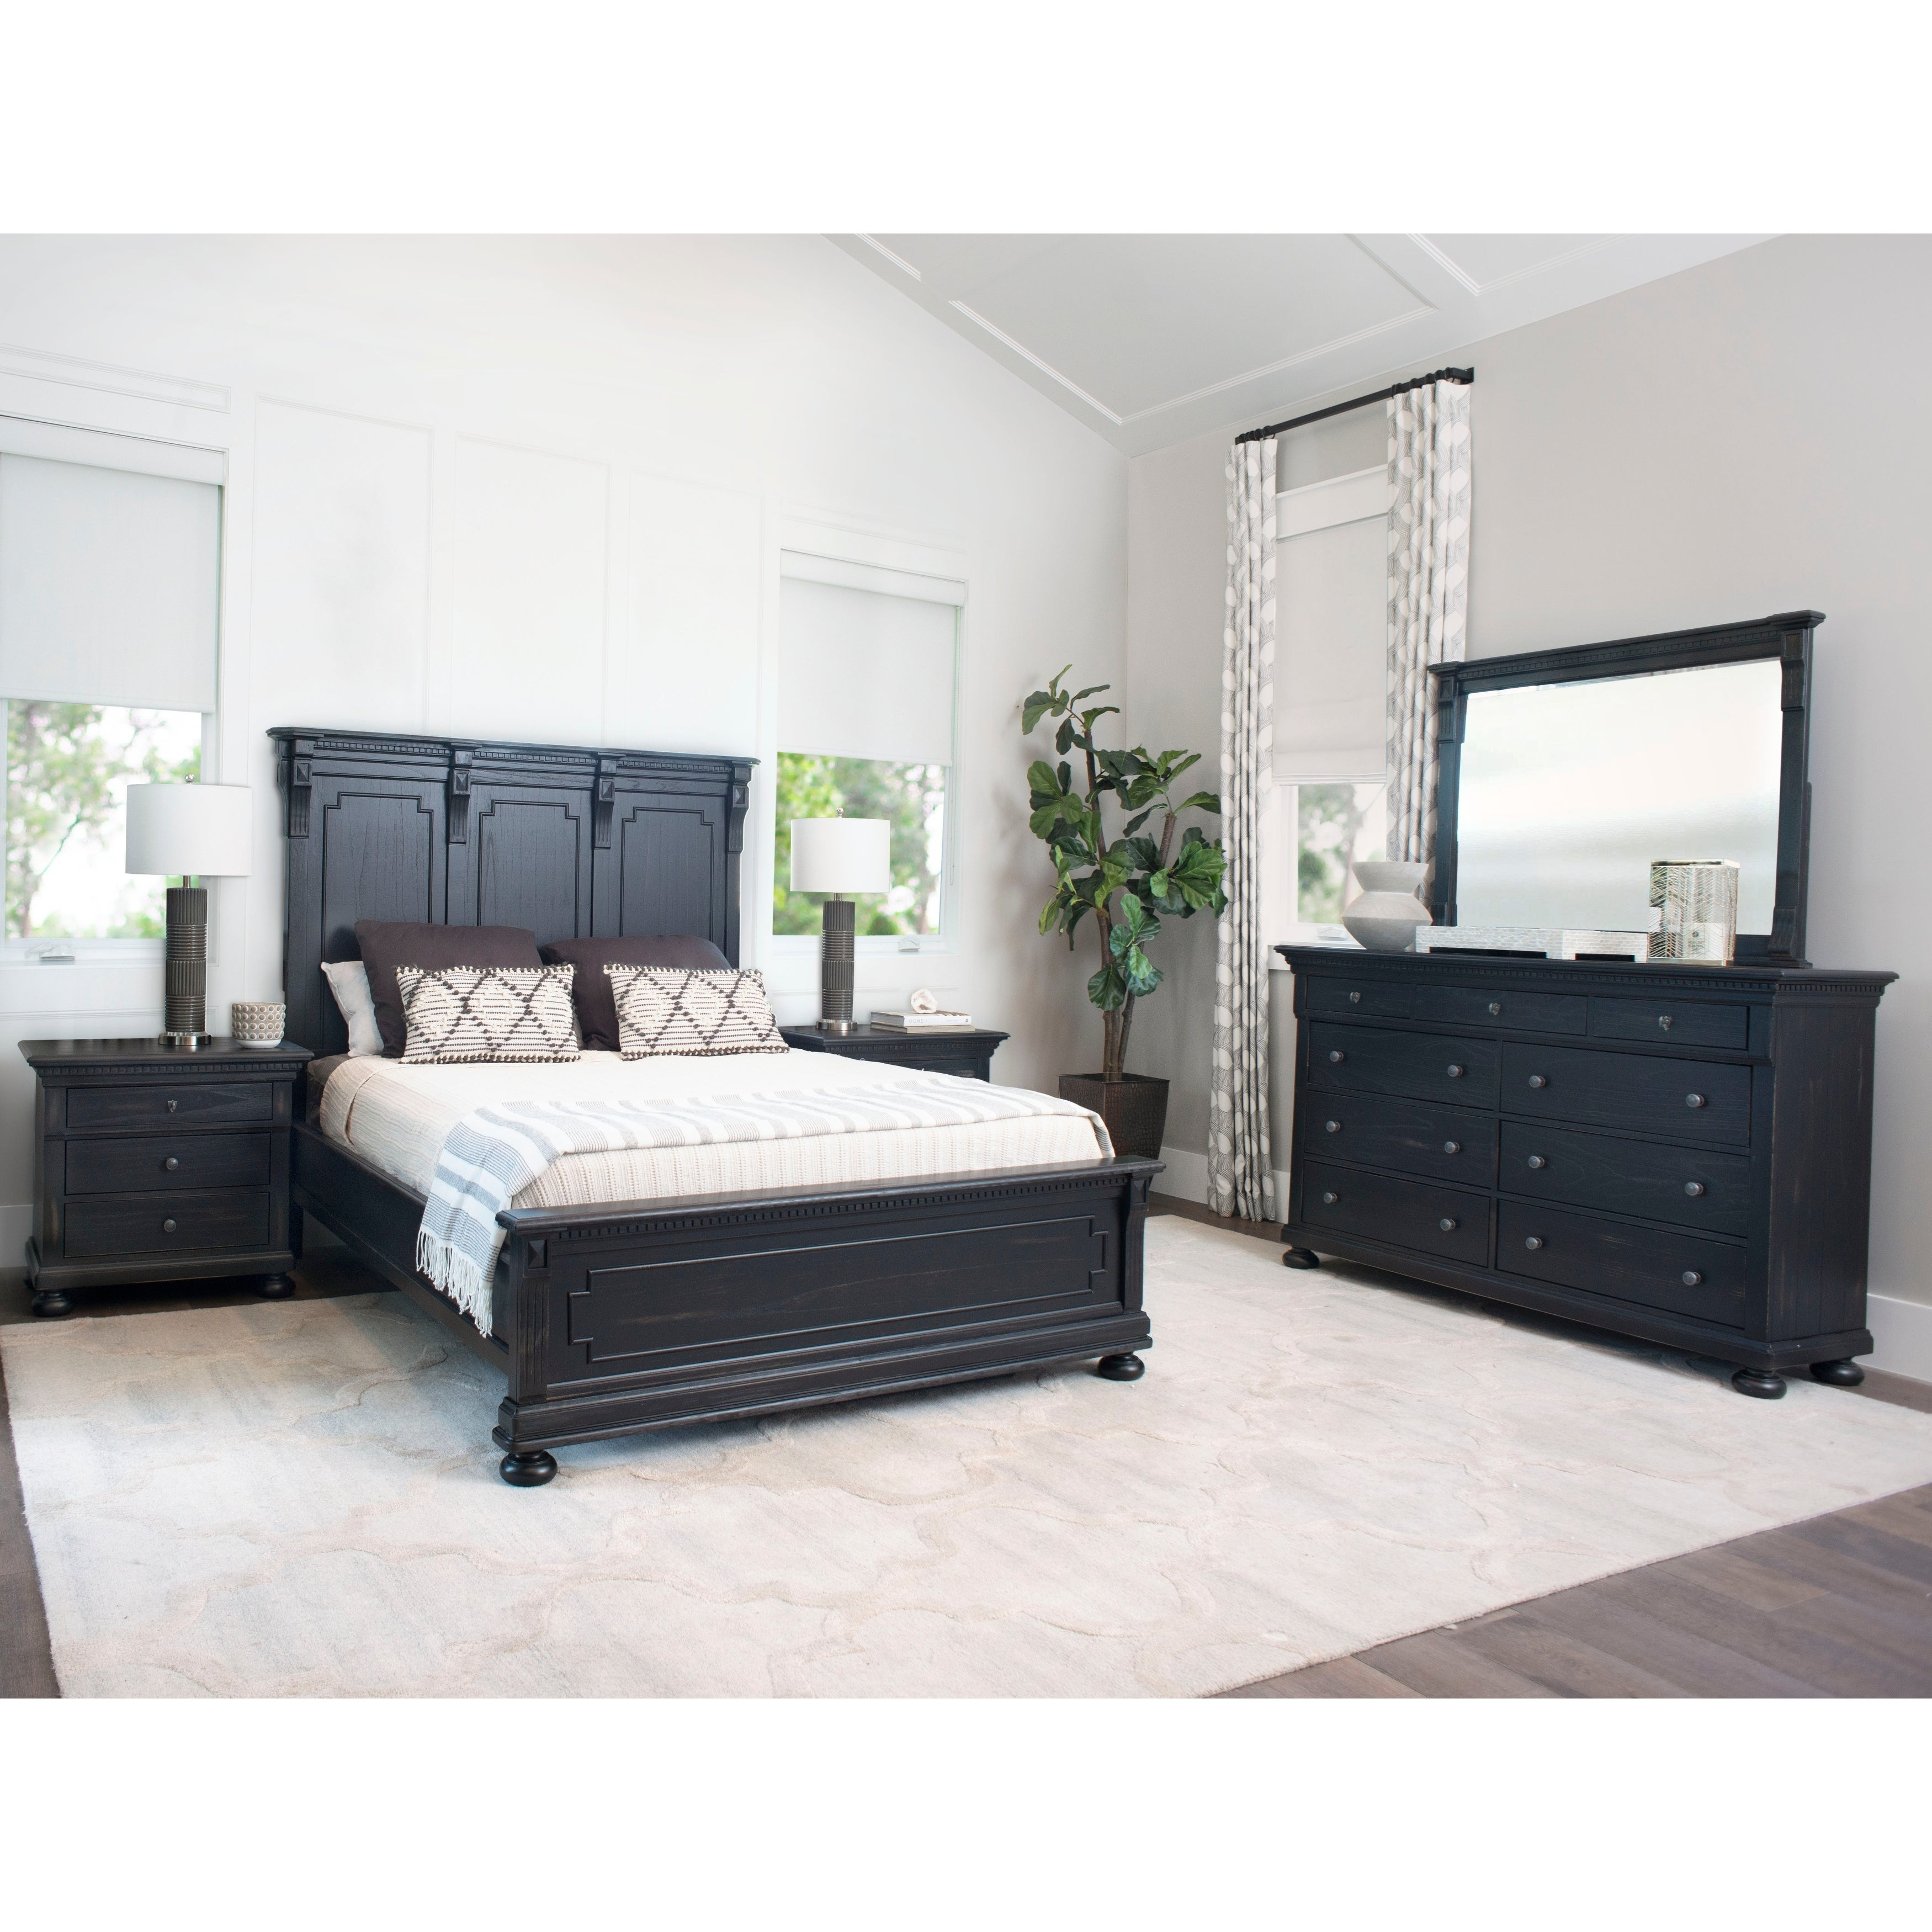 Shop Abbyson Hendrick Distressed Black Wood 5 Piece Bedroom Set